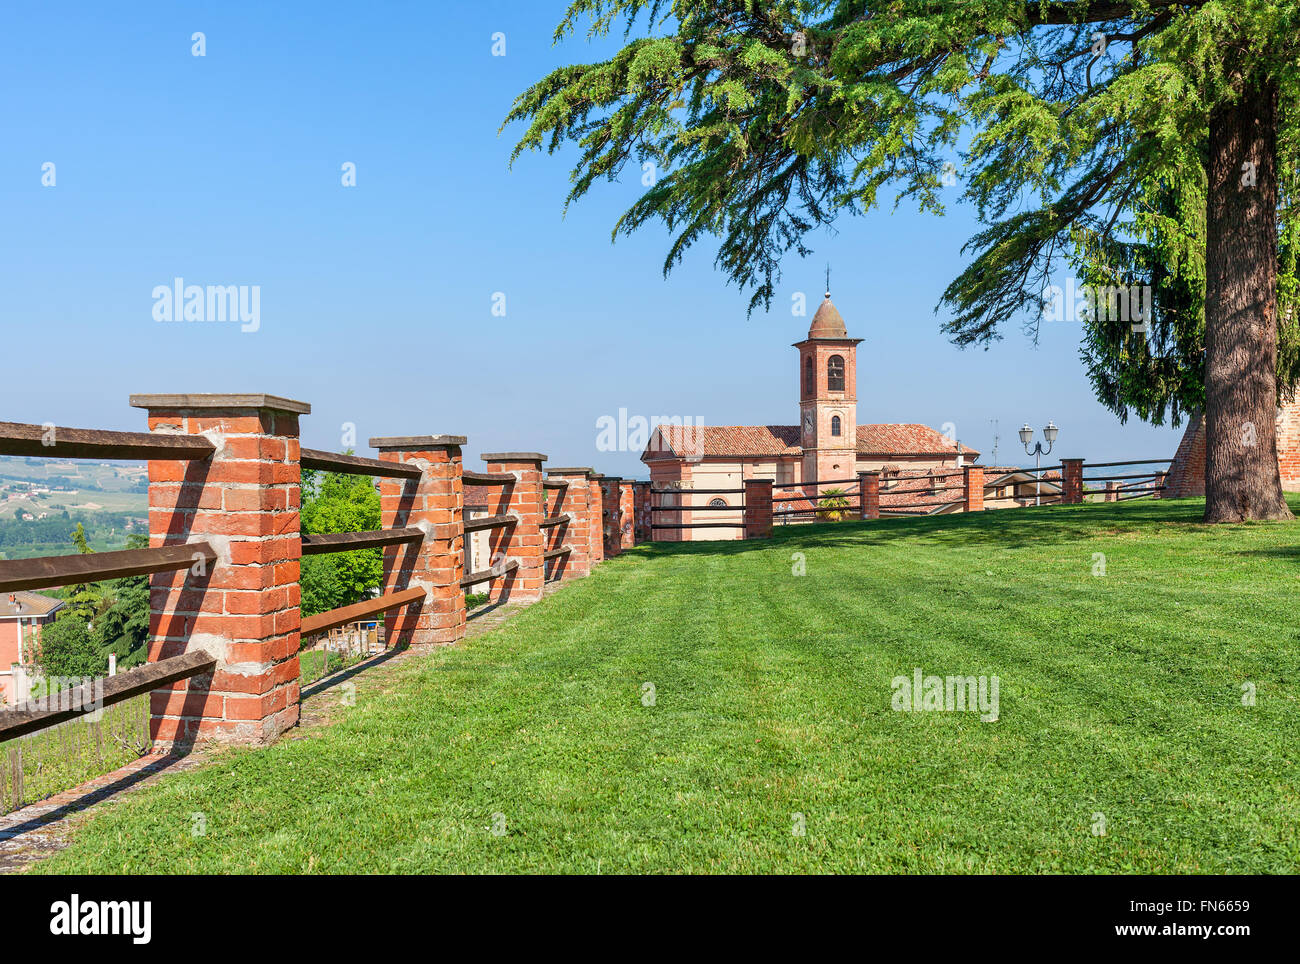 Brick fence along green lawn as small parish church on background under blue sky in Piedmont, Northern Italy. - Stock Image